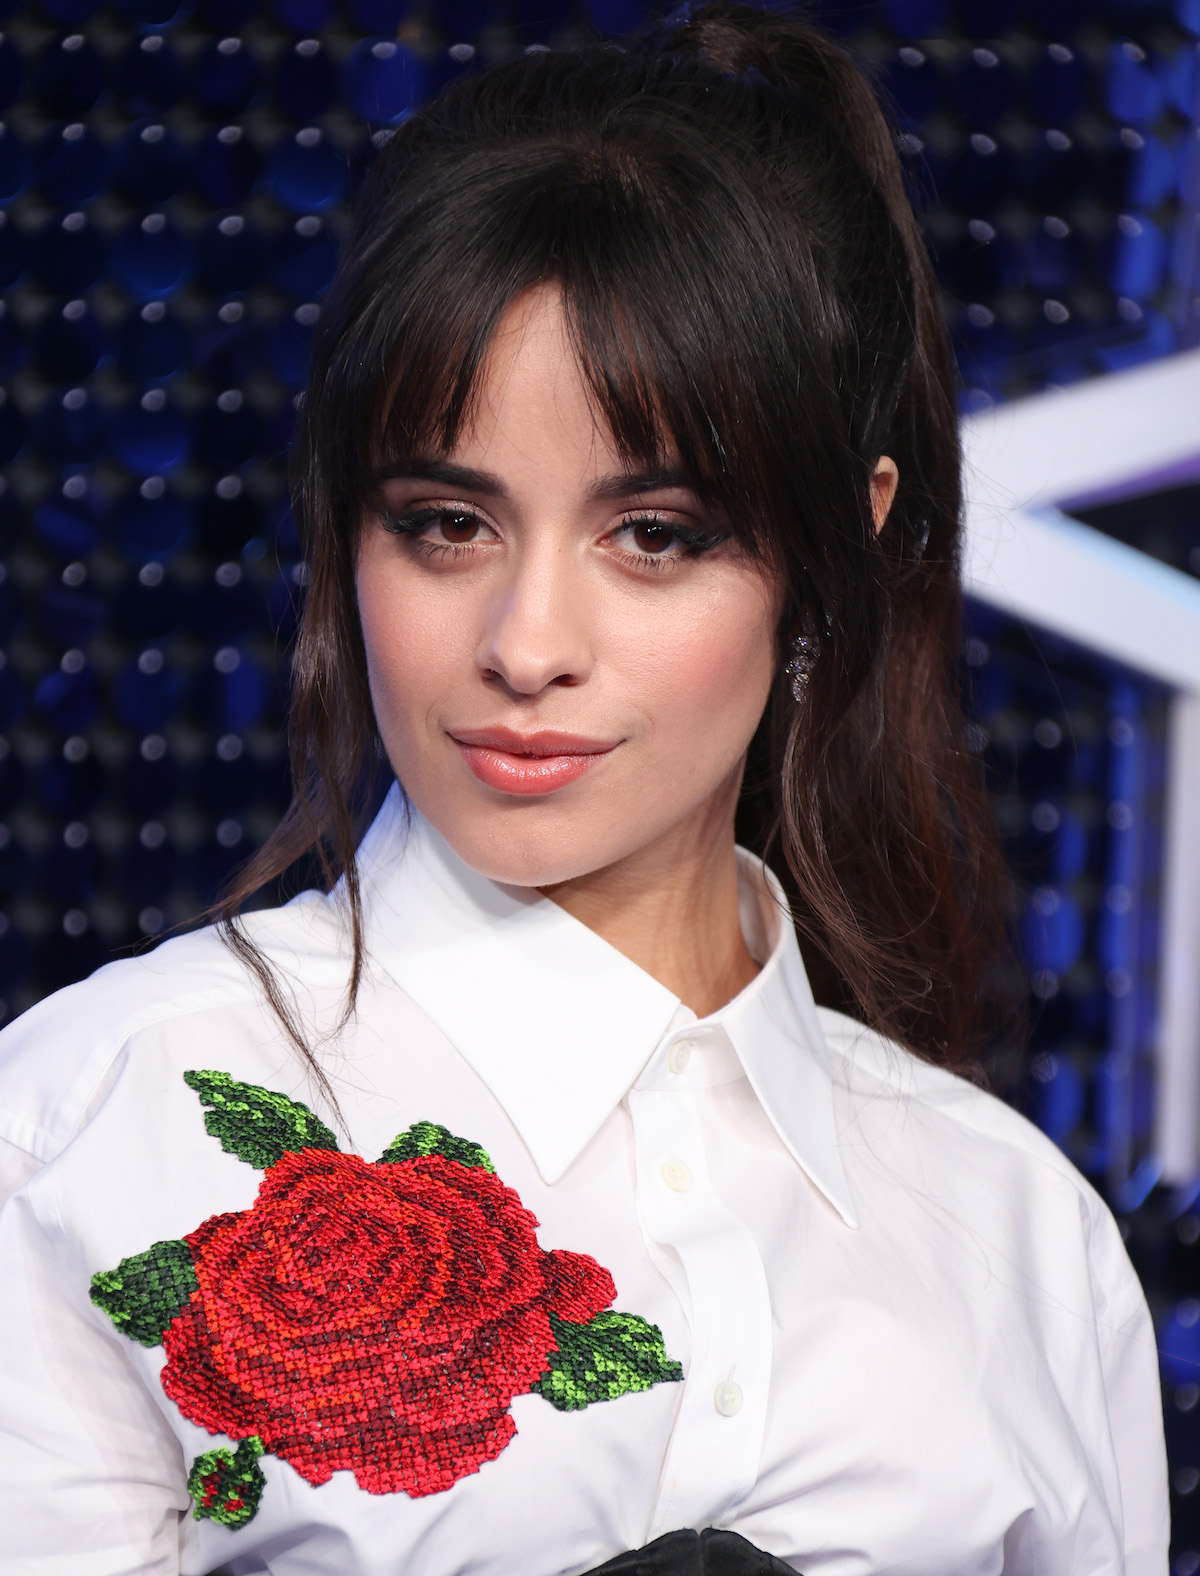 Camila Cabello wears a white top with a large red rose on it at an event.